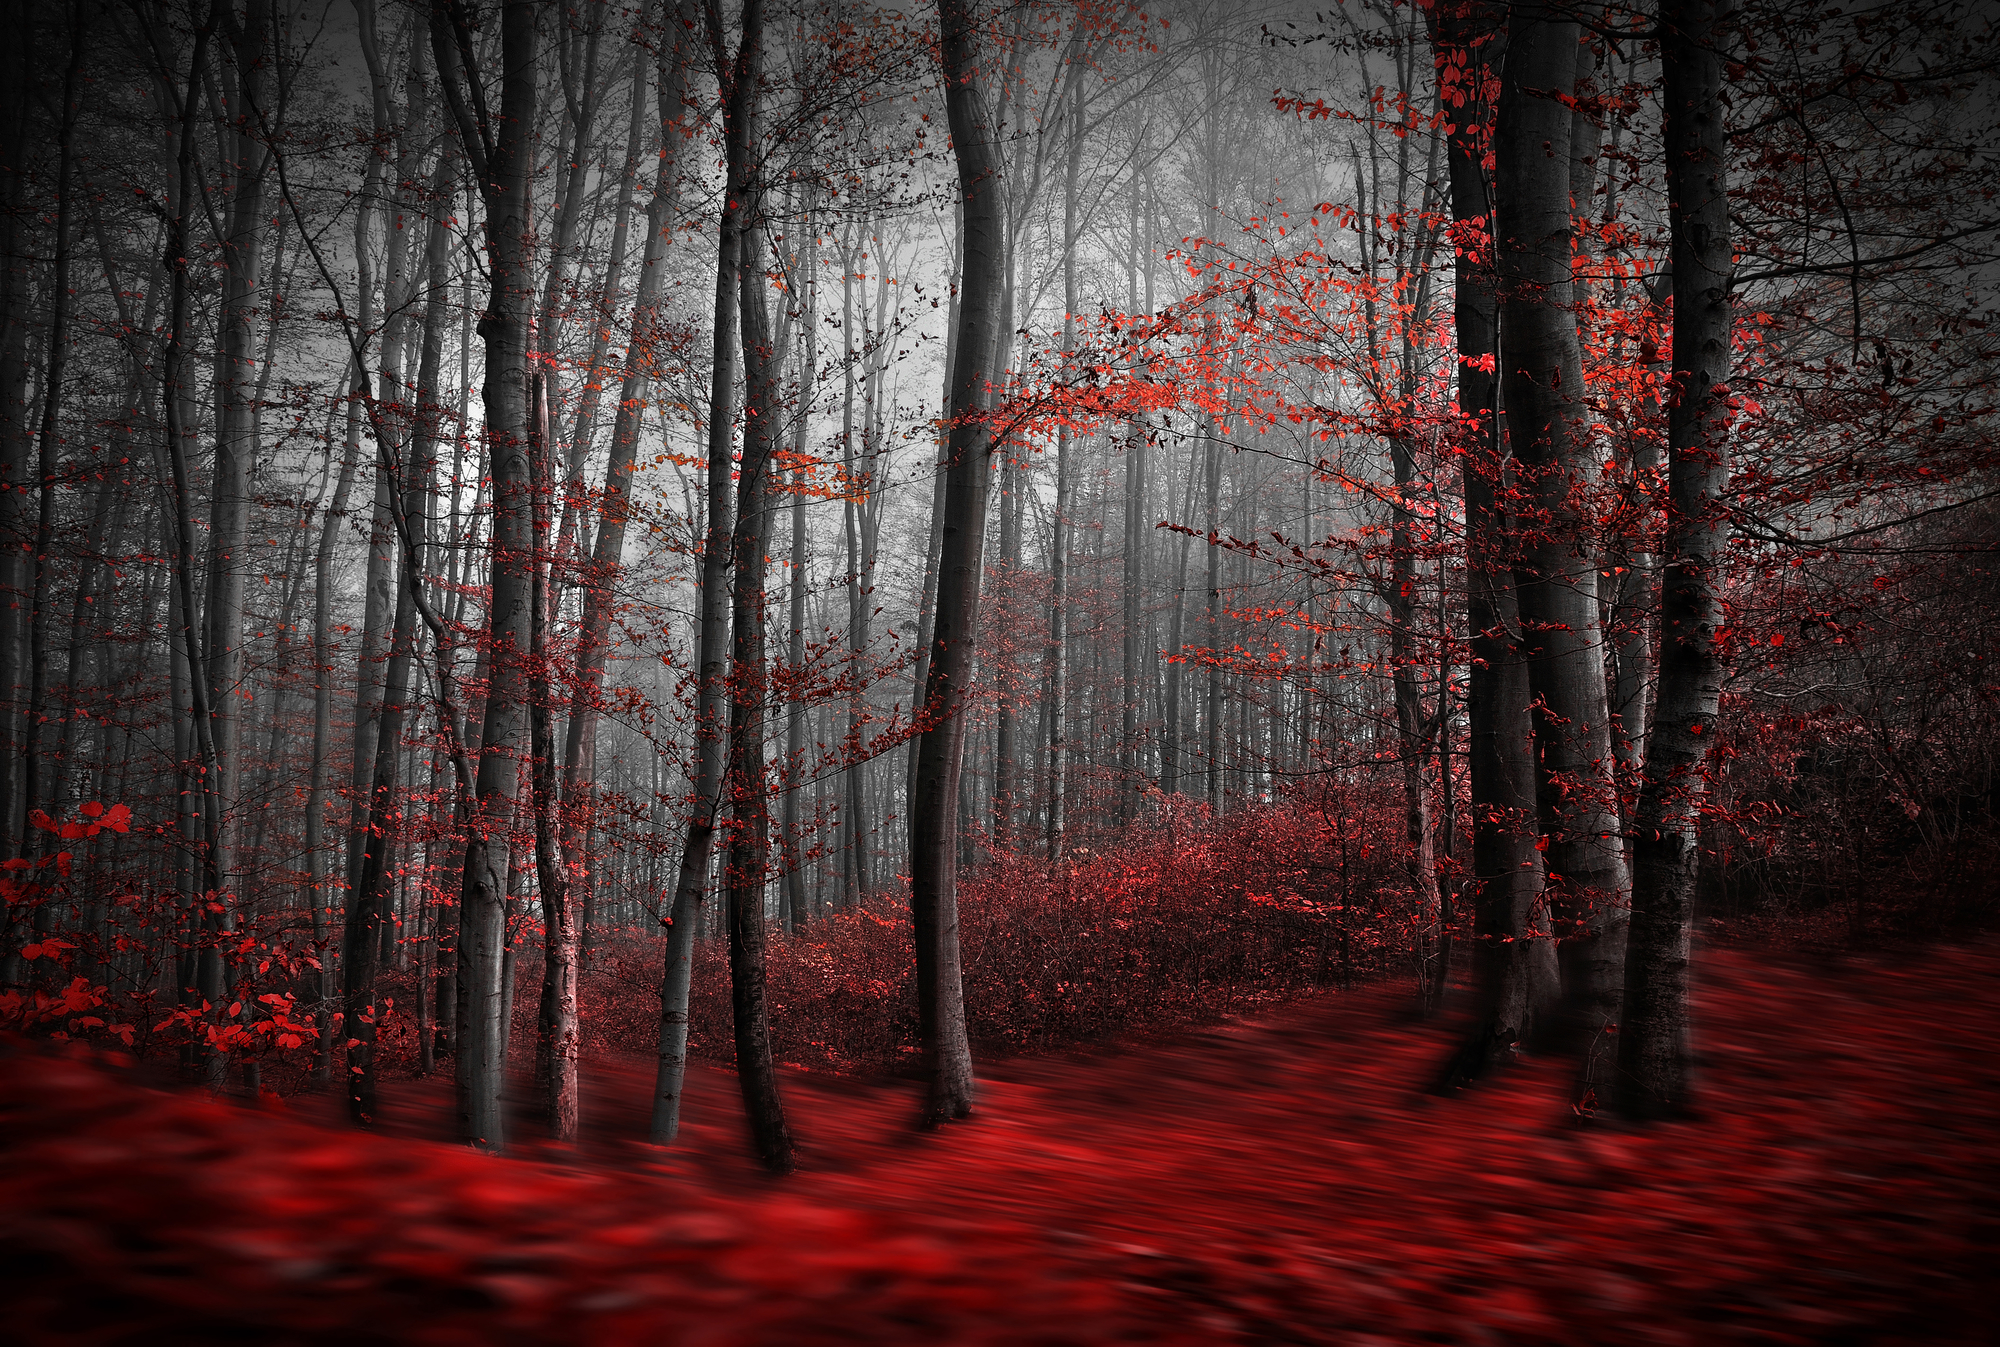 Iphone 6s Wallpaper Dimensions Red Carpet Forest Wall Mural Amp Red Carpet Forest Wallpaper